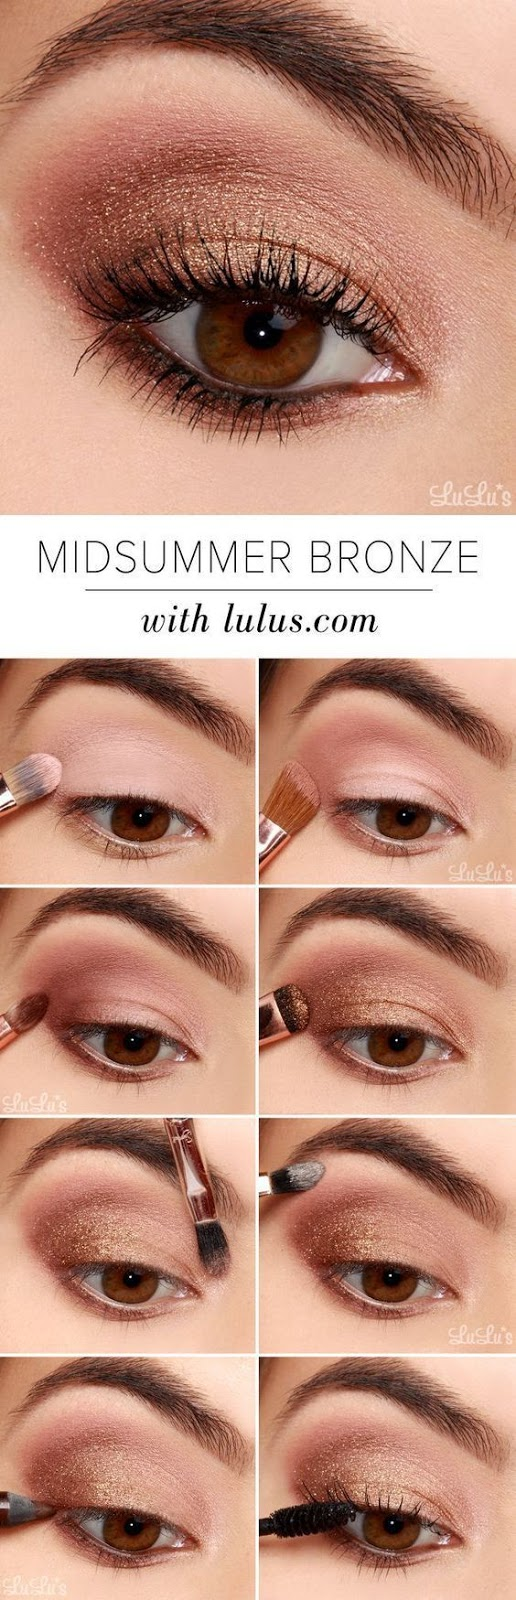 20 Easy Step By Step Eyeshadow Tutorials for Beginners